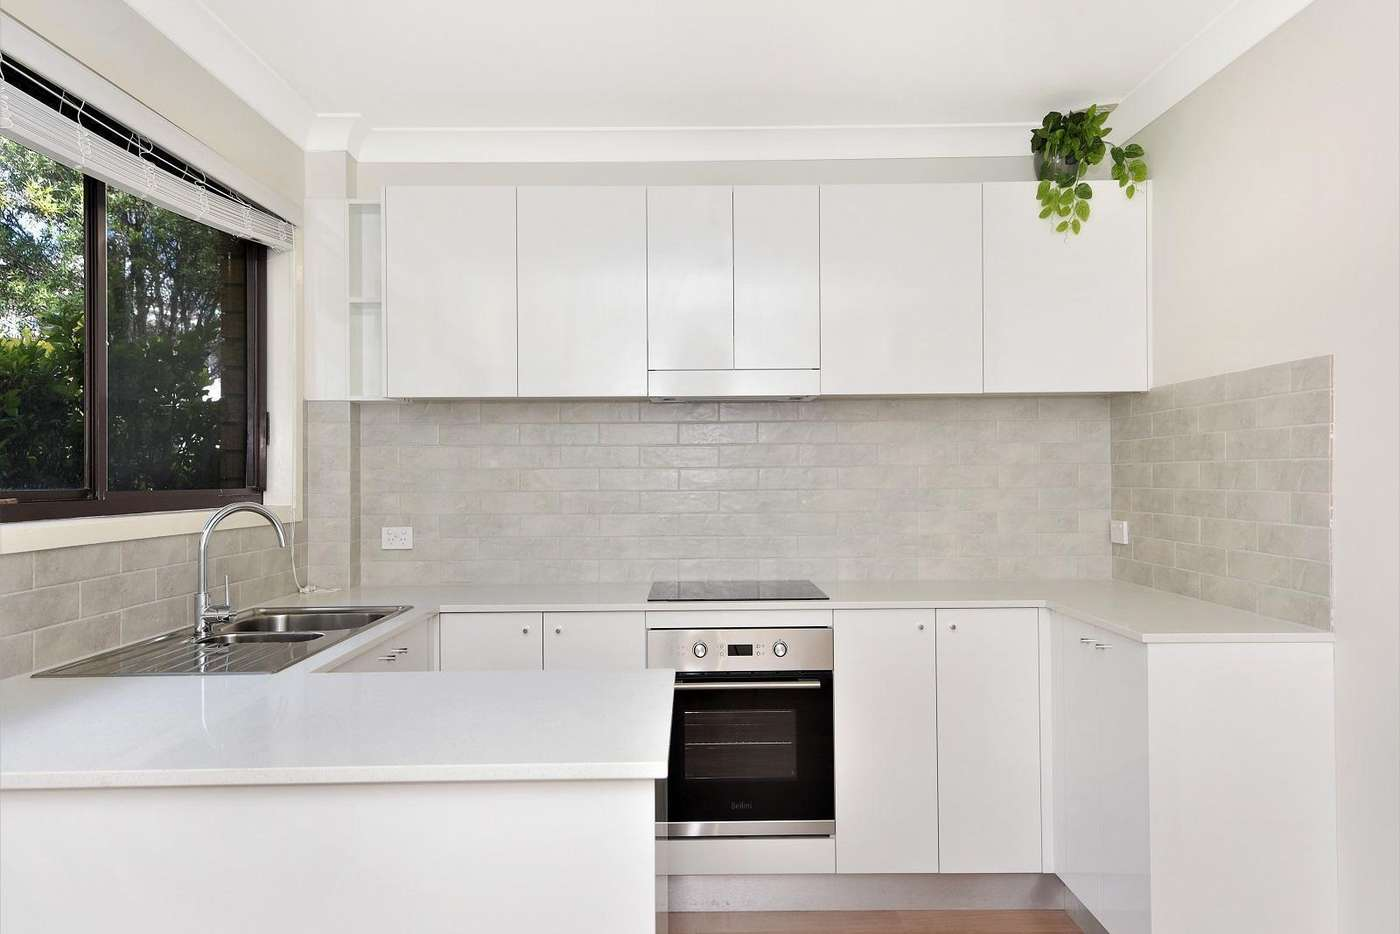 Main view of Homely apartment listing, 4/203 Albany Street, Point Frederick NSW 2250